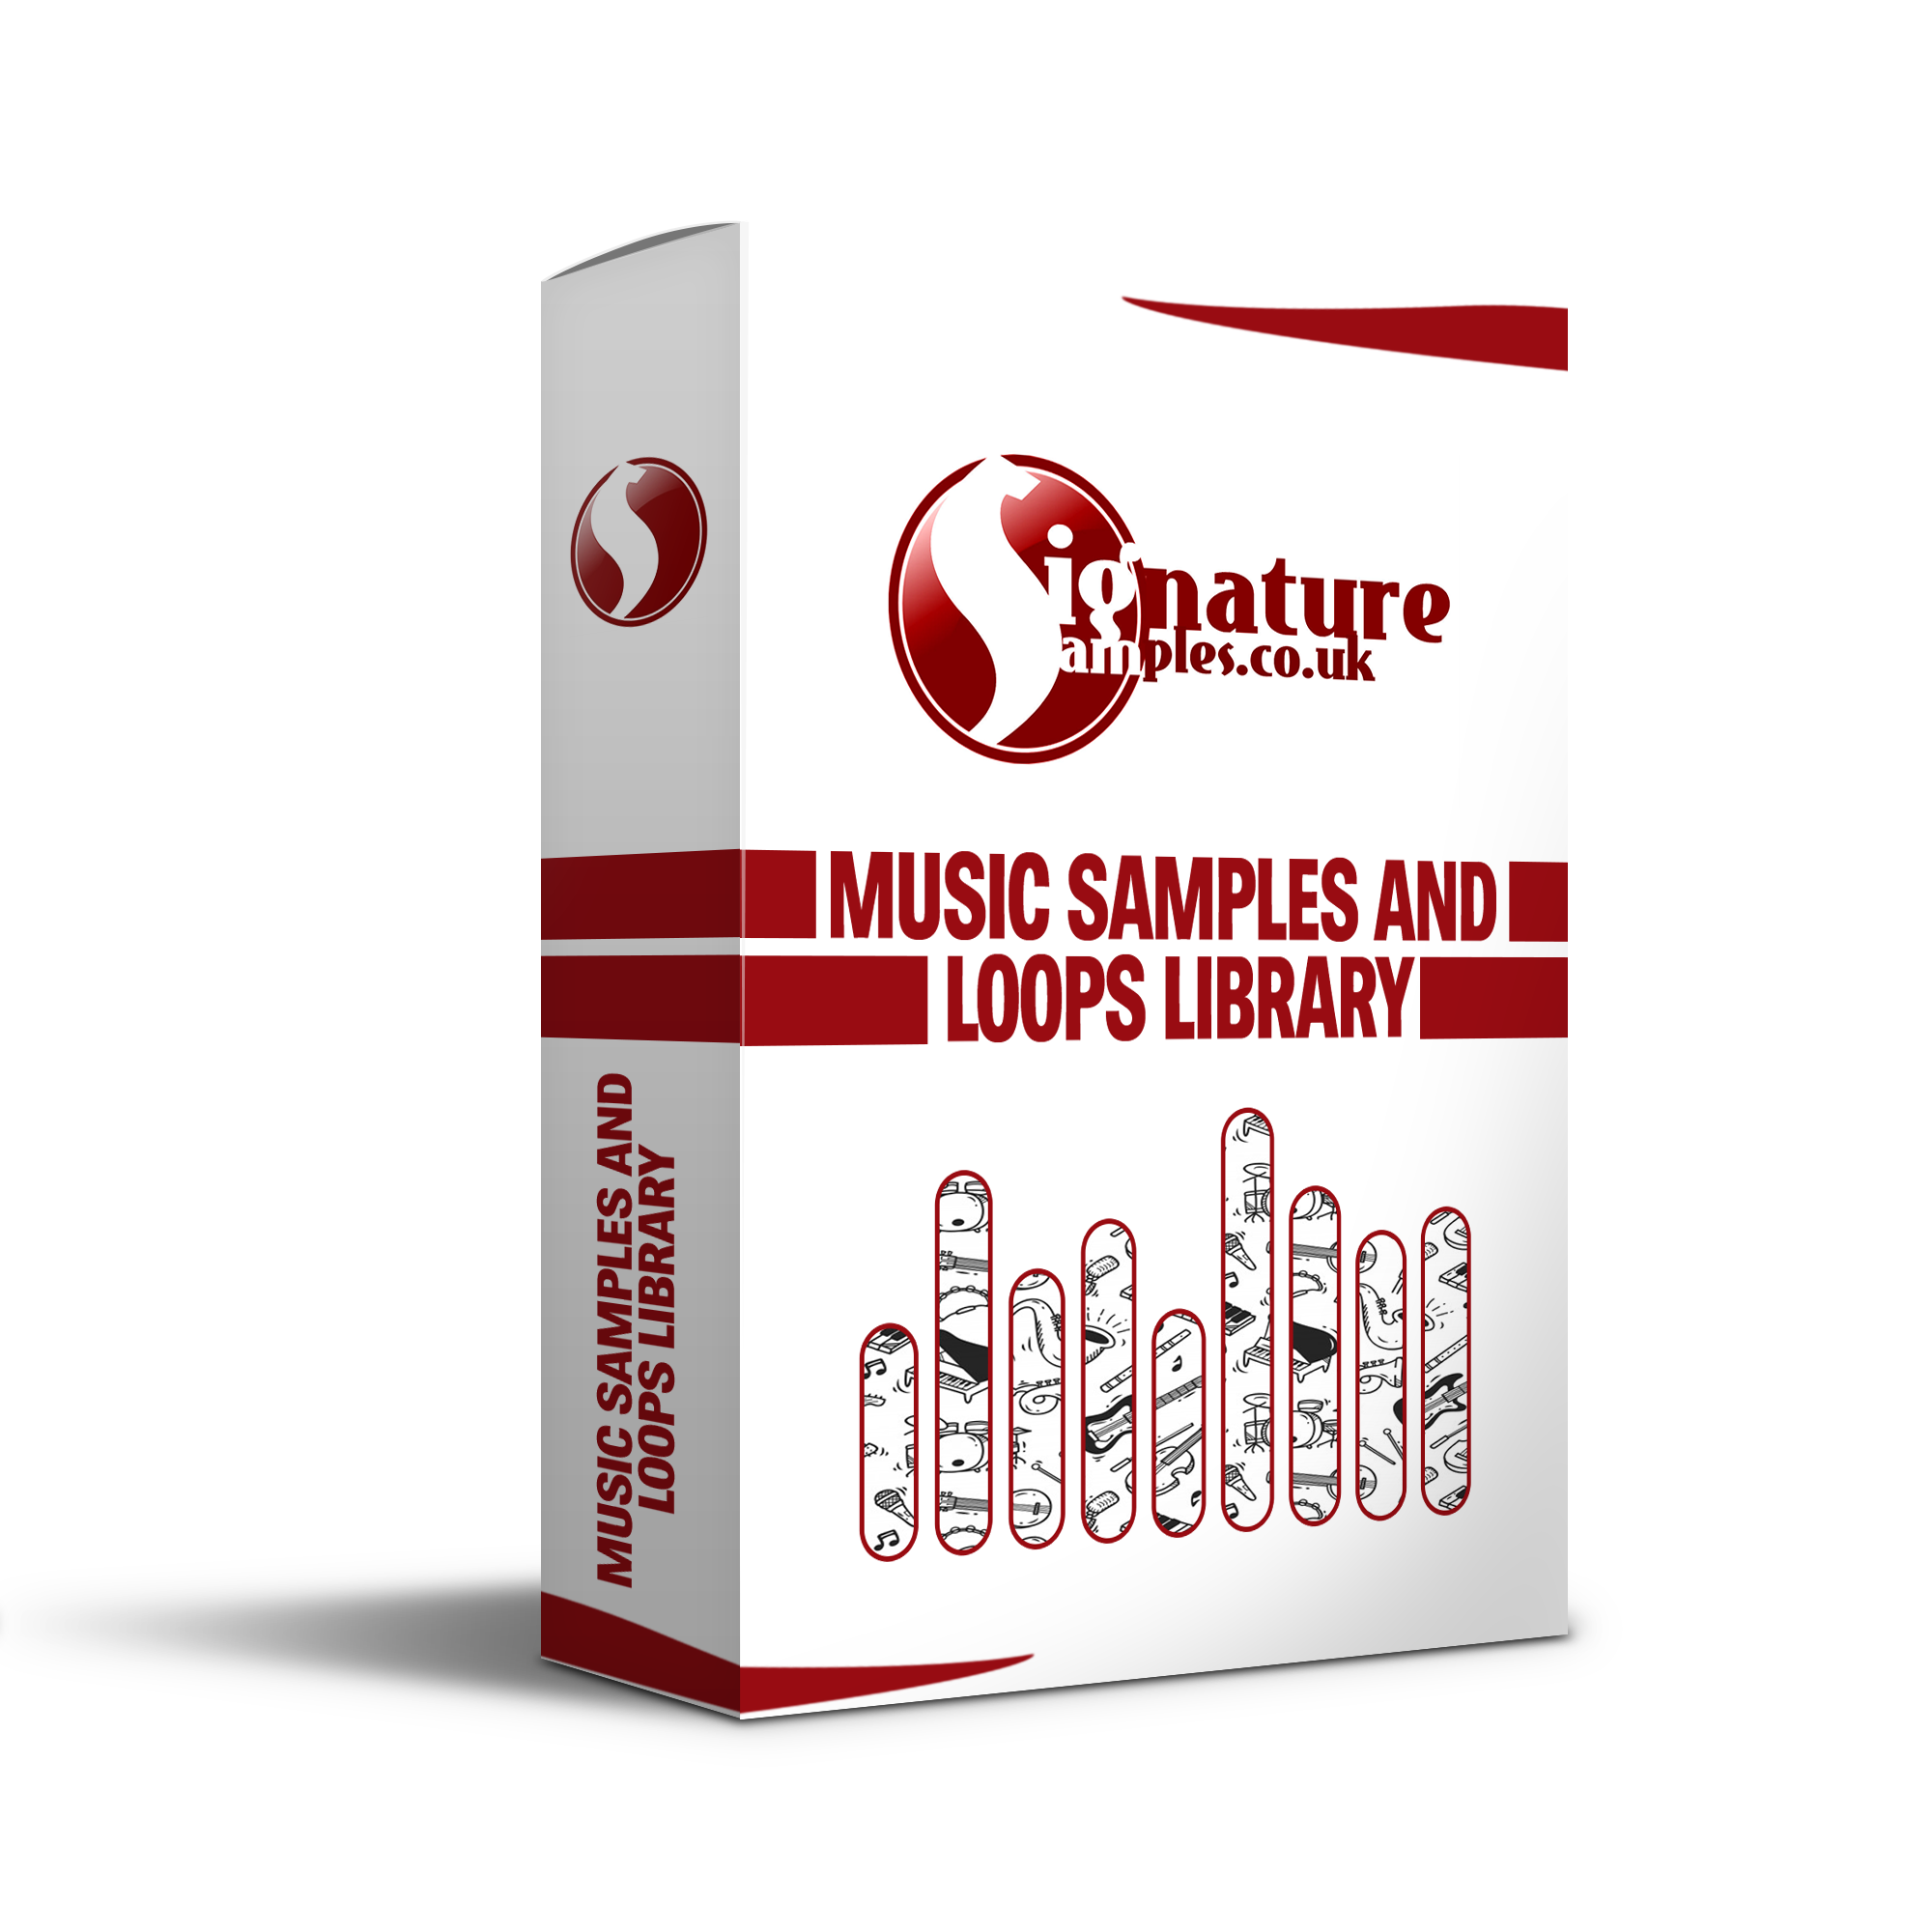 Music Loops And Samples Library - £3.49 - 1000's of music samples and loops all primed and ready to be inserted into any DAW. From choir samples to Xylophone samples this pack is filled with over 100 different samples packs from many different instruments and grows bigger and better every month.